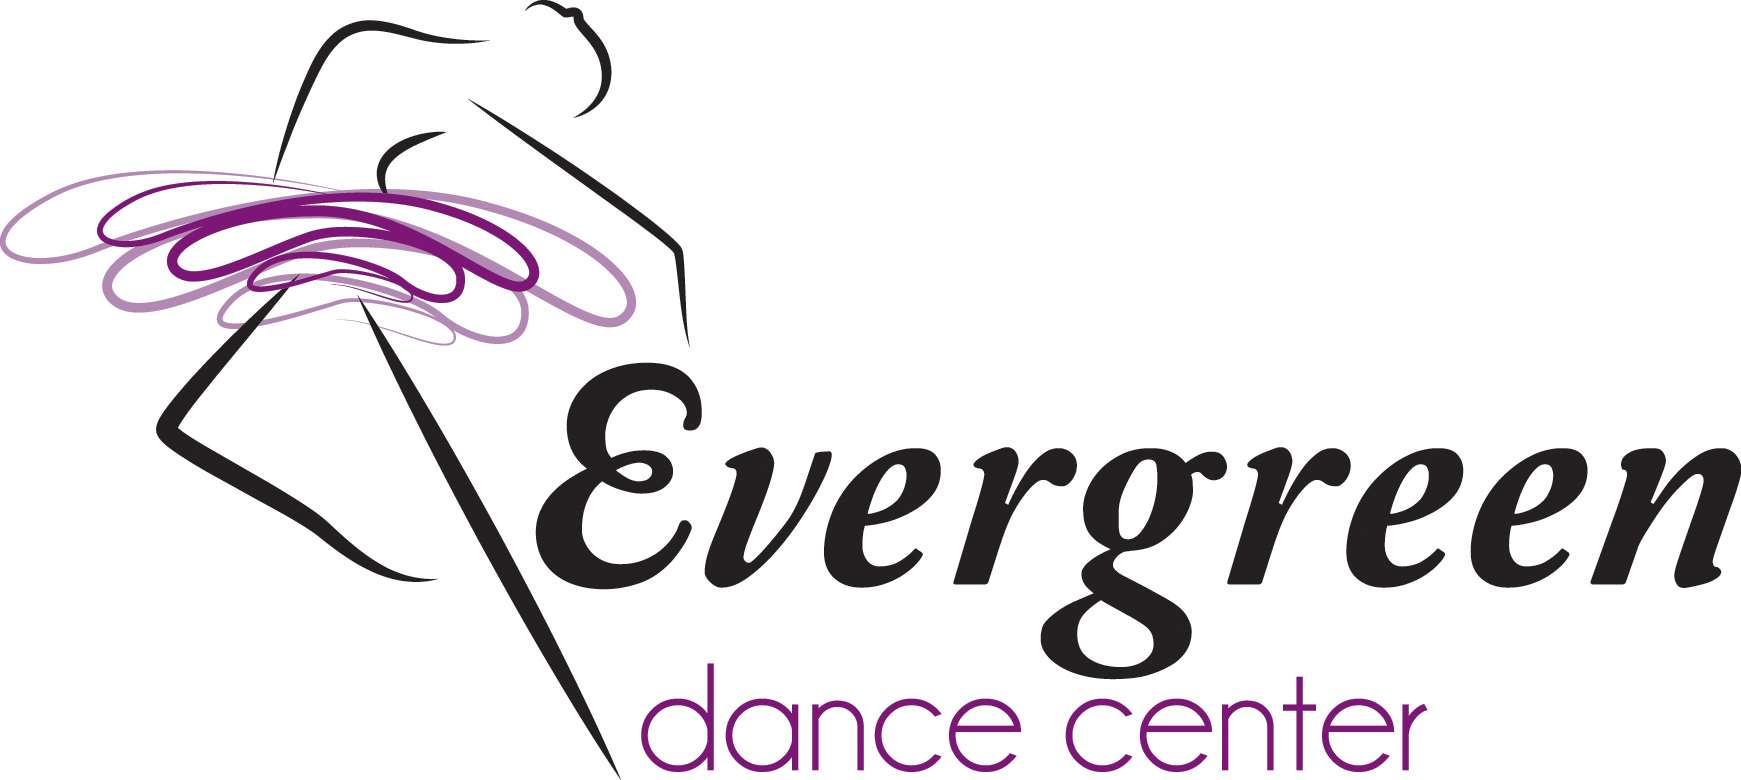 Evergreen Dance Center